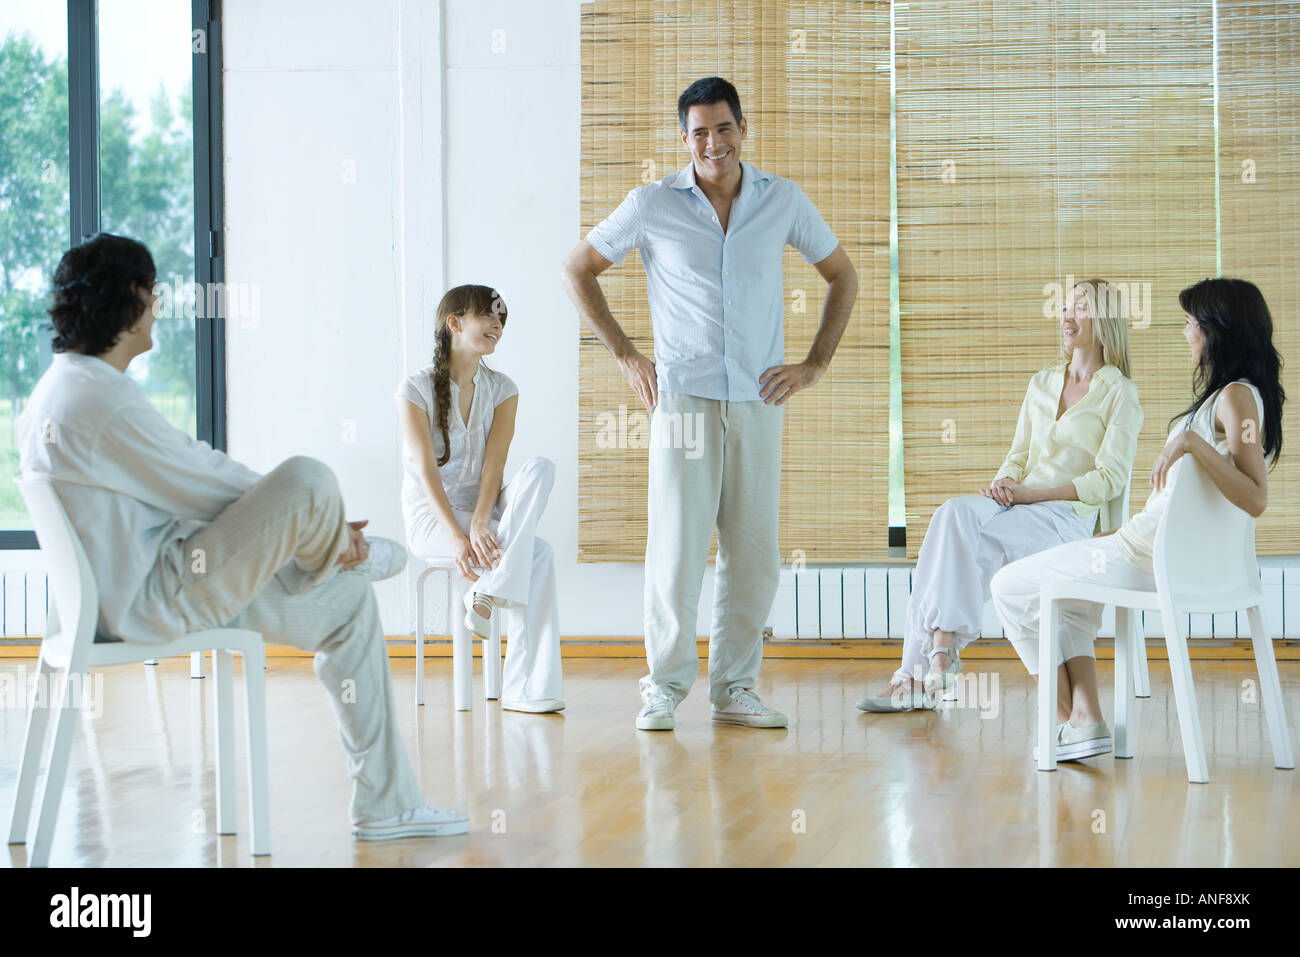 Man leading group therapy session - Stock Image